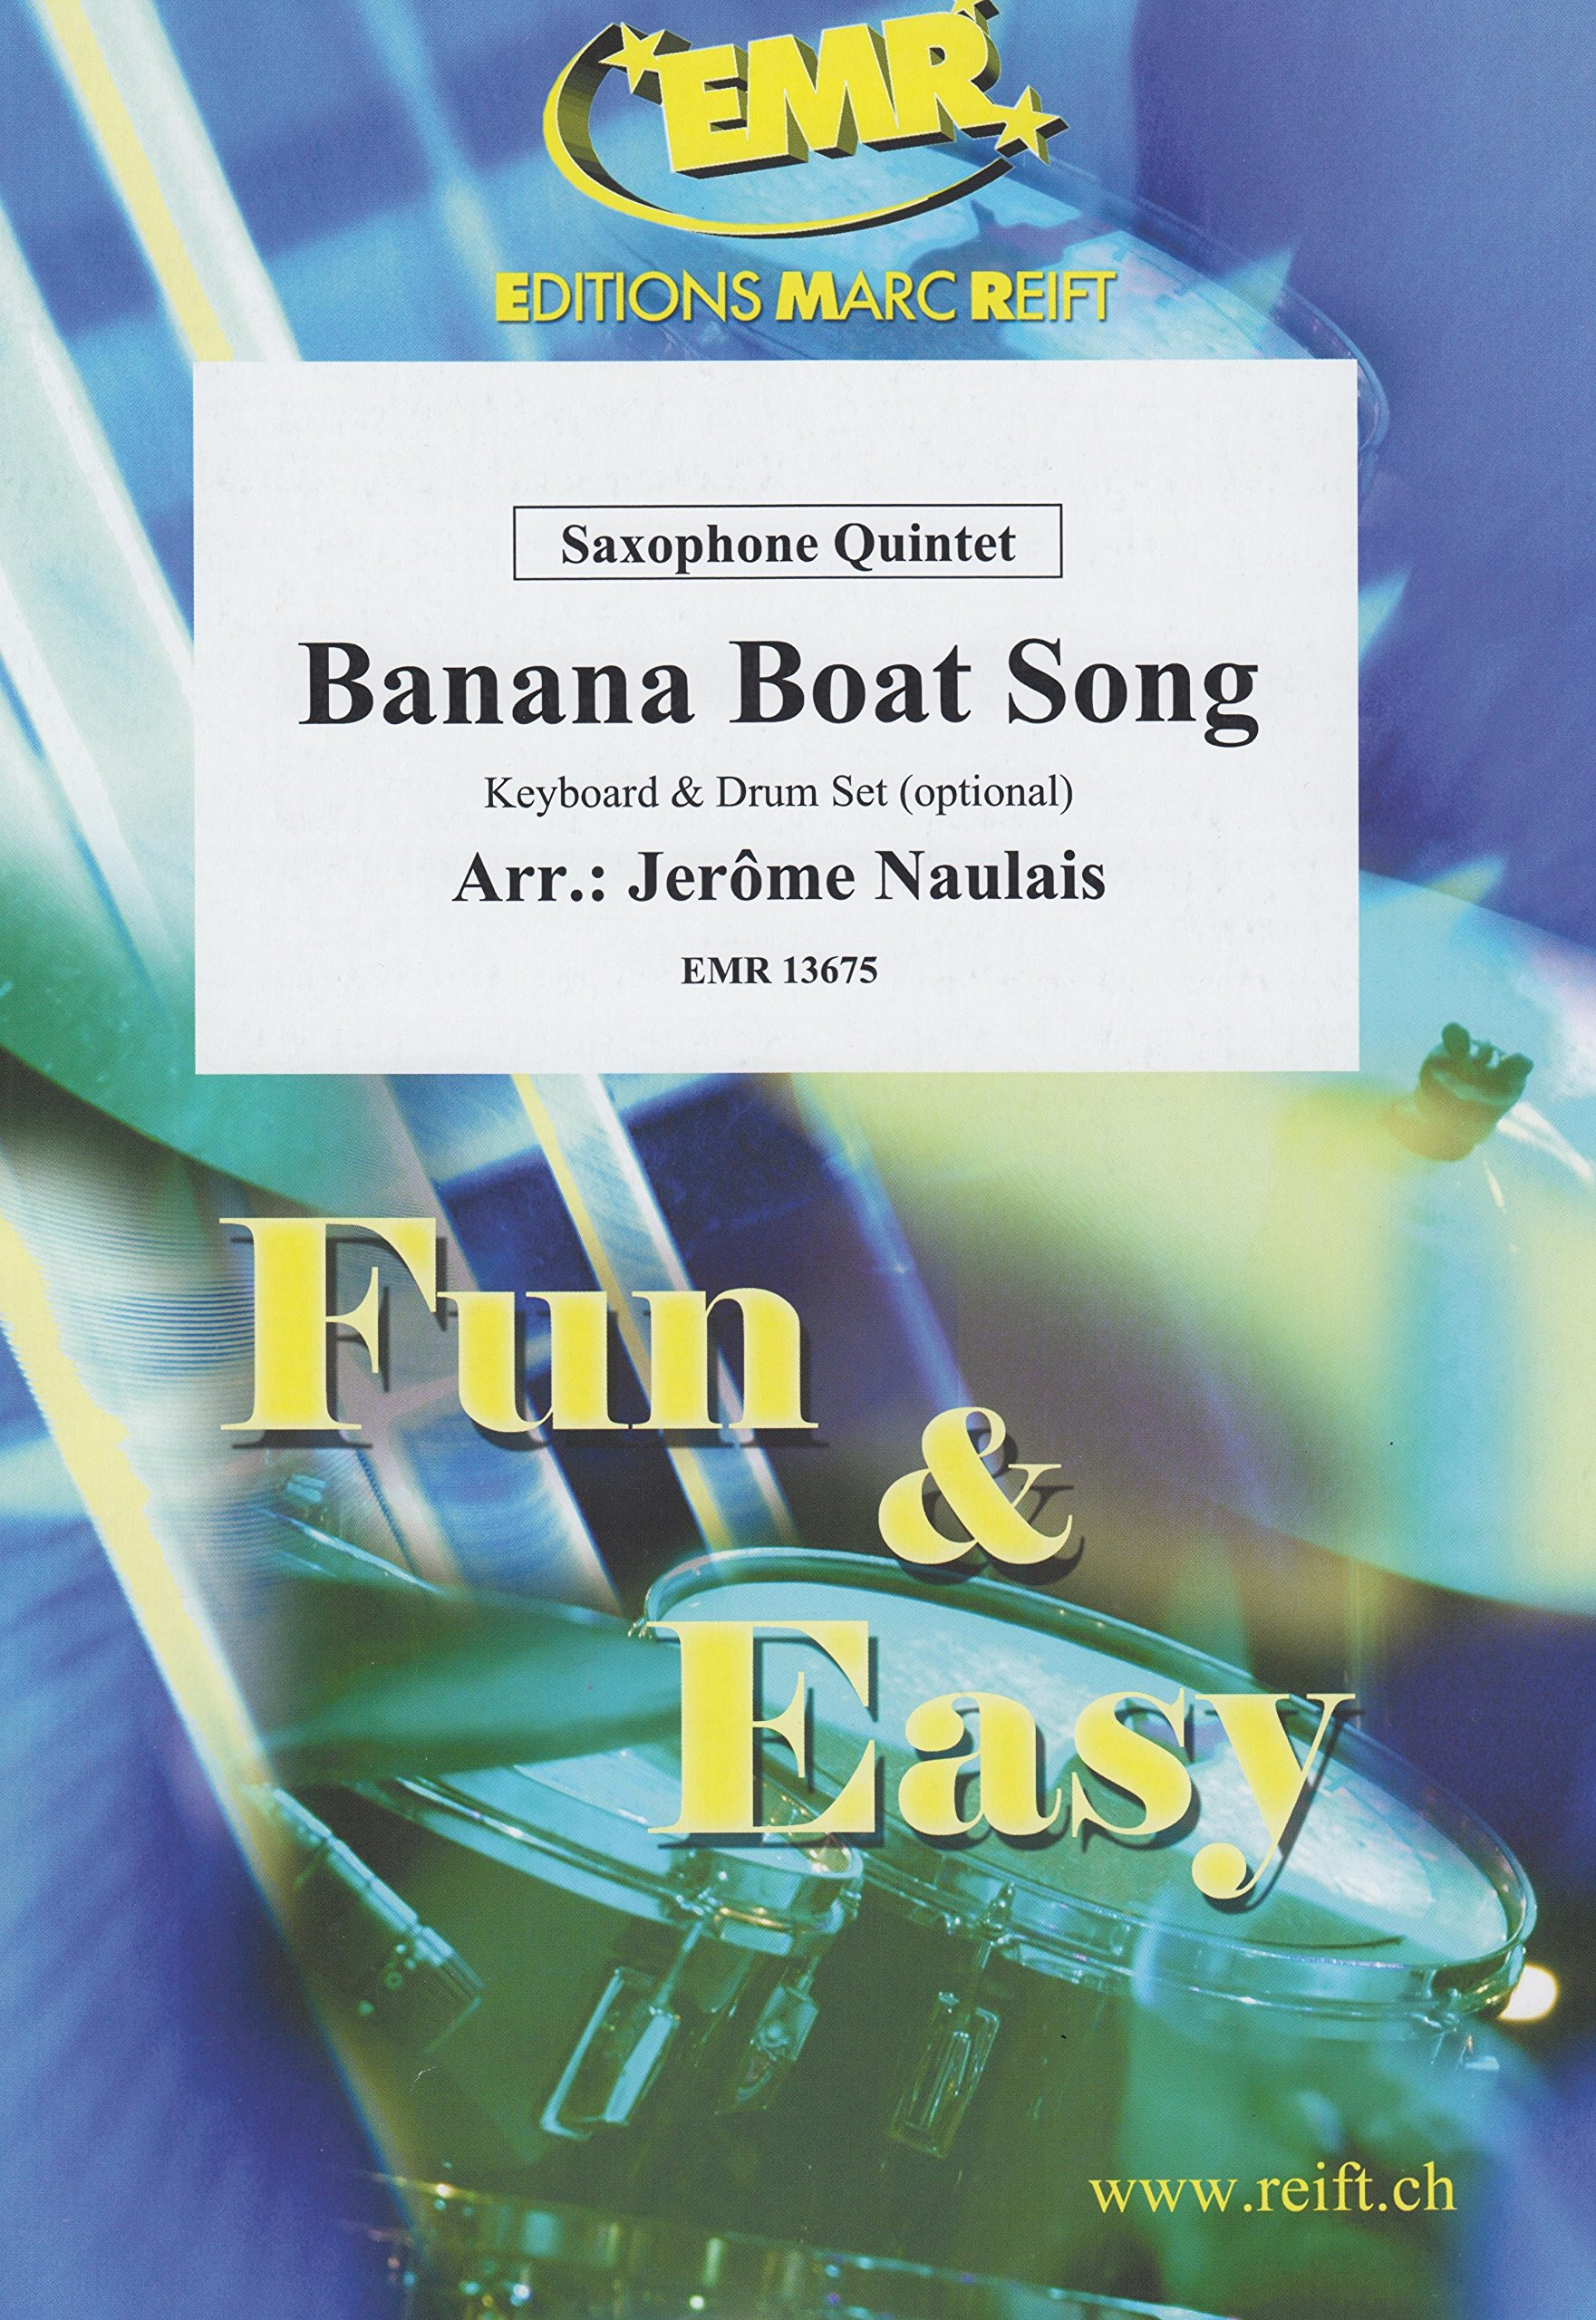 Banana Boat Song for Saxophone Quintet Arranged by Jerome Naulais by Jerome Naulais (Image #1)